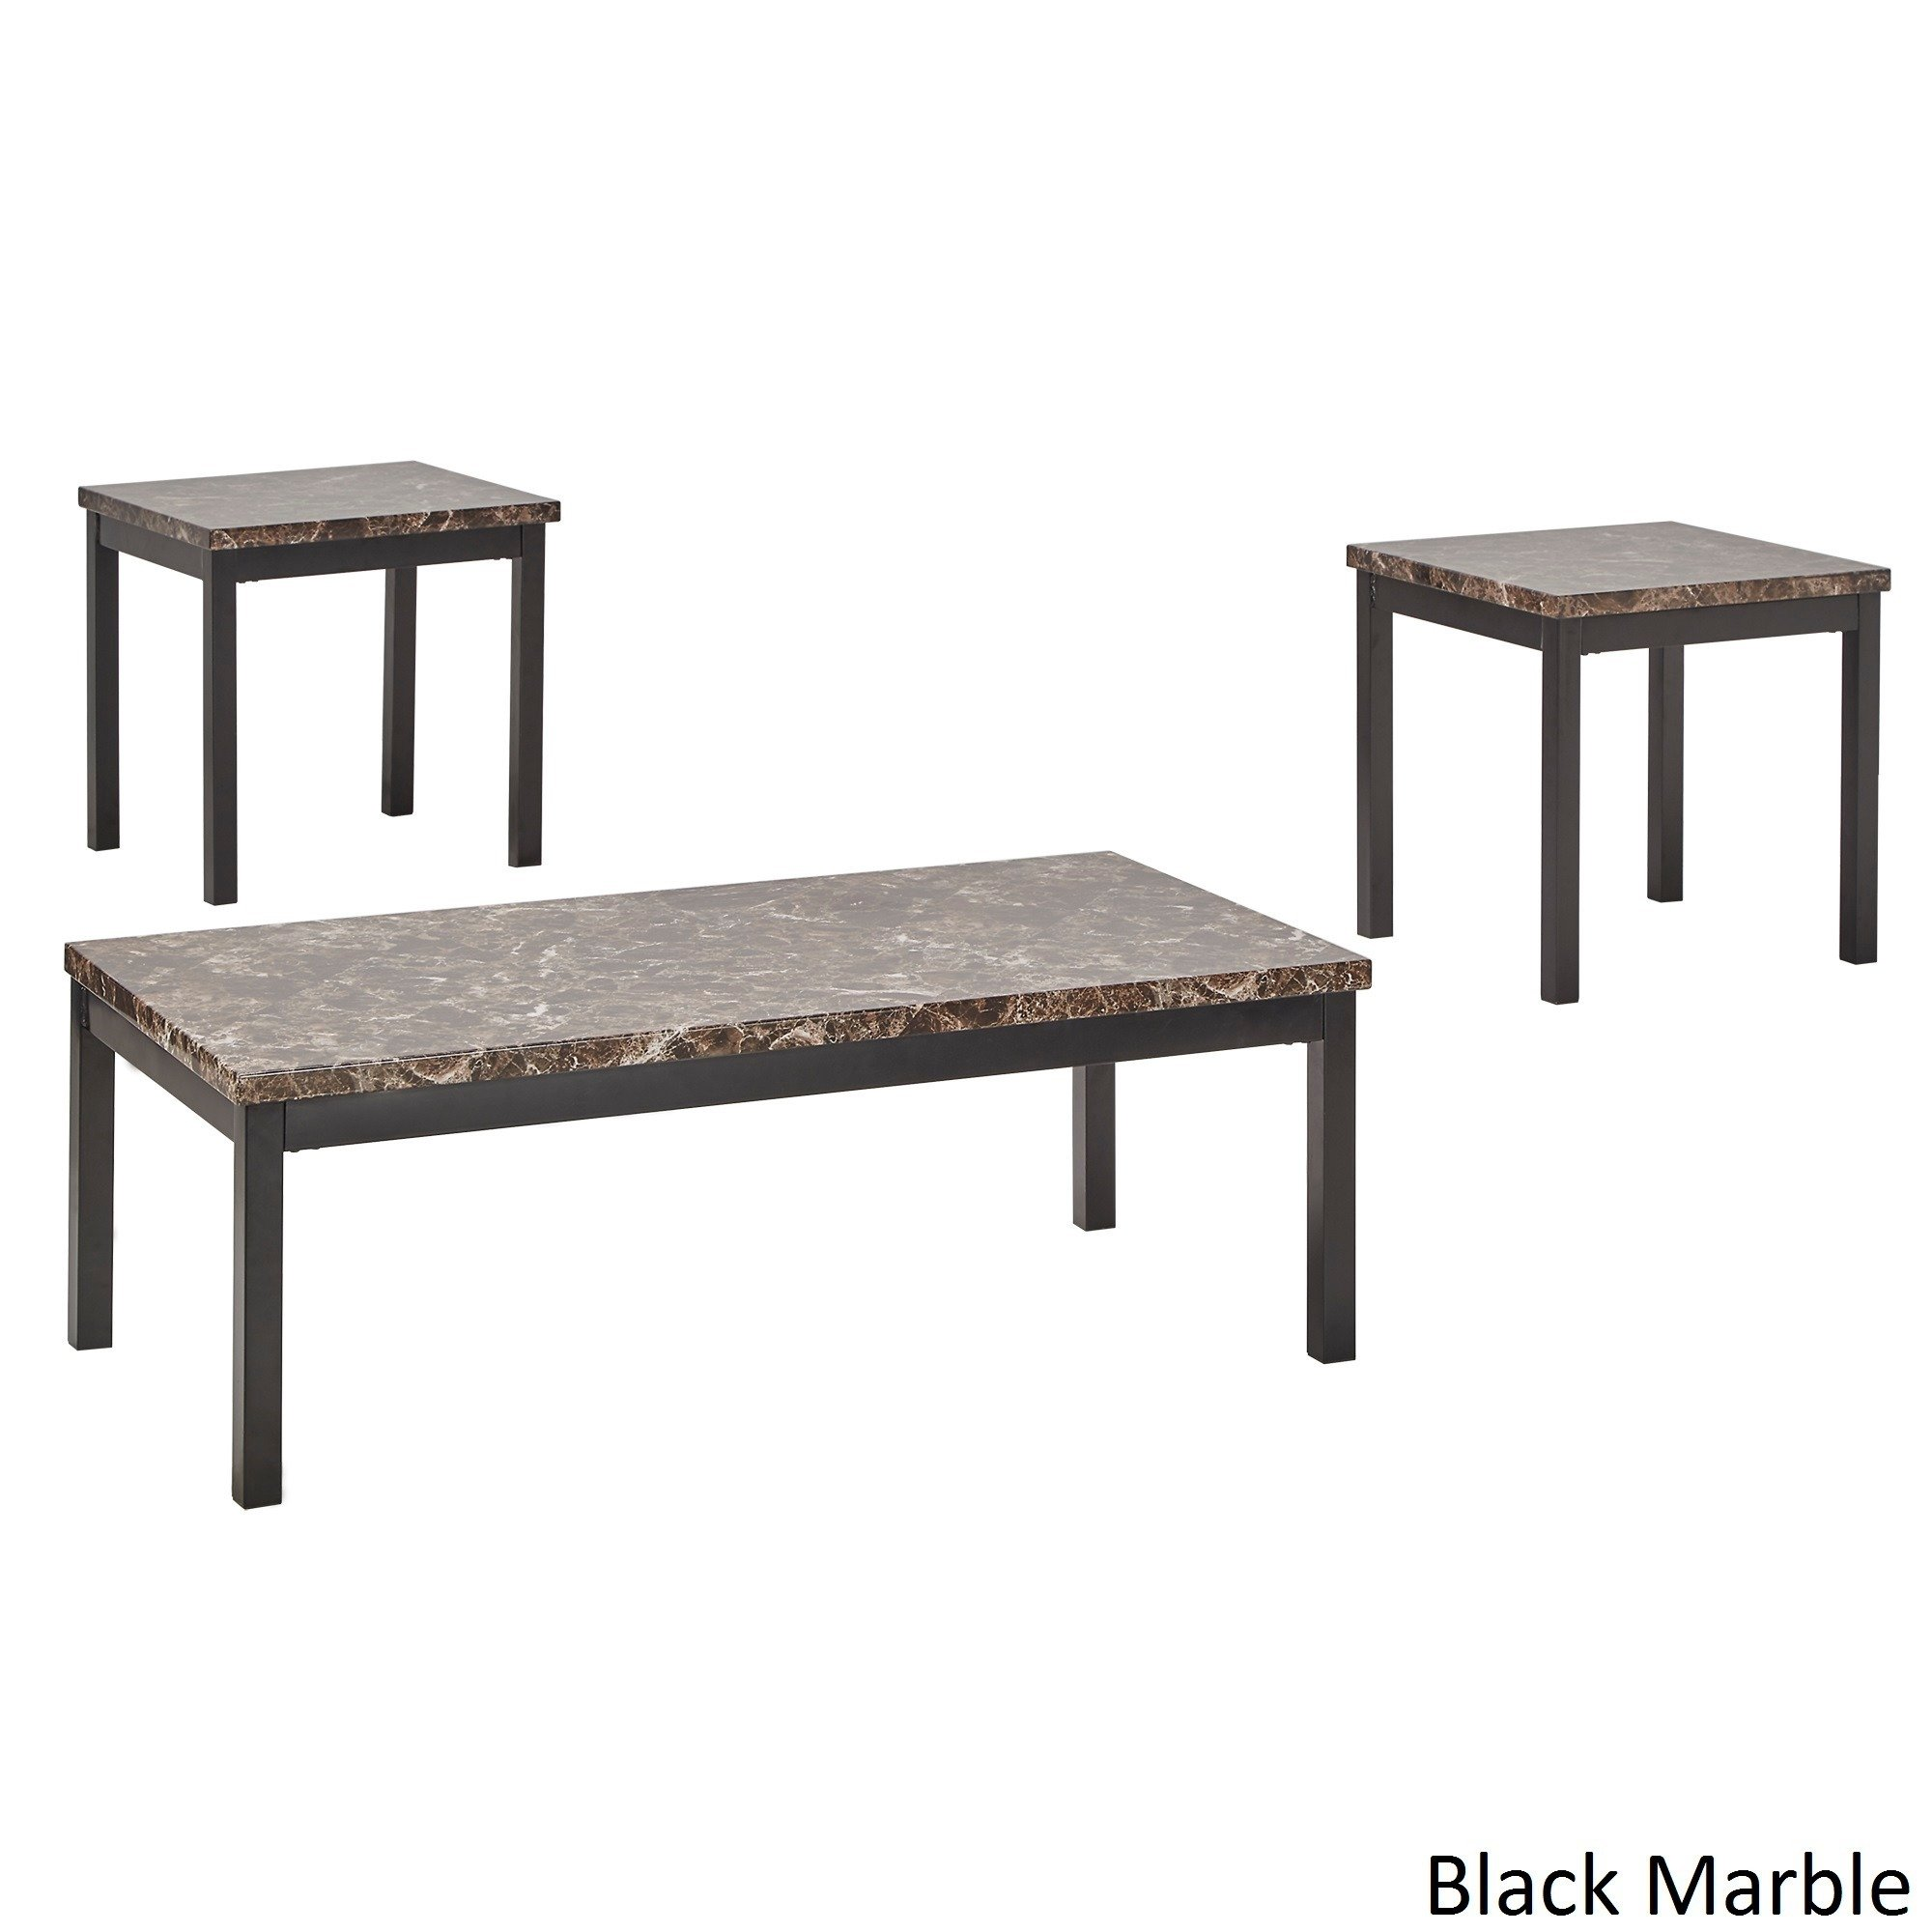 darcy piece metal and faux marble accent table set inspire bold free shipping today clear glass coffee wicker furniture clearance counter height bar contemporary round side